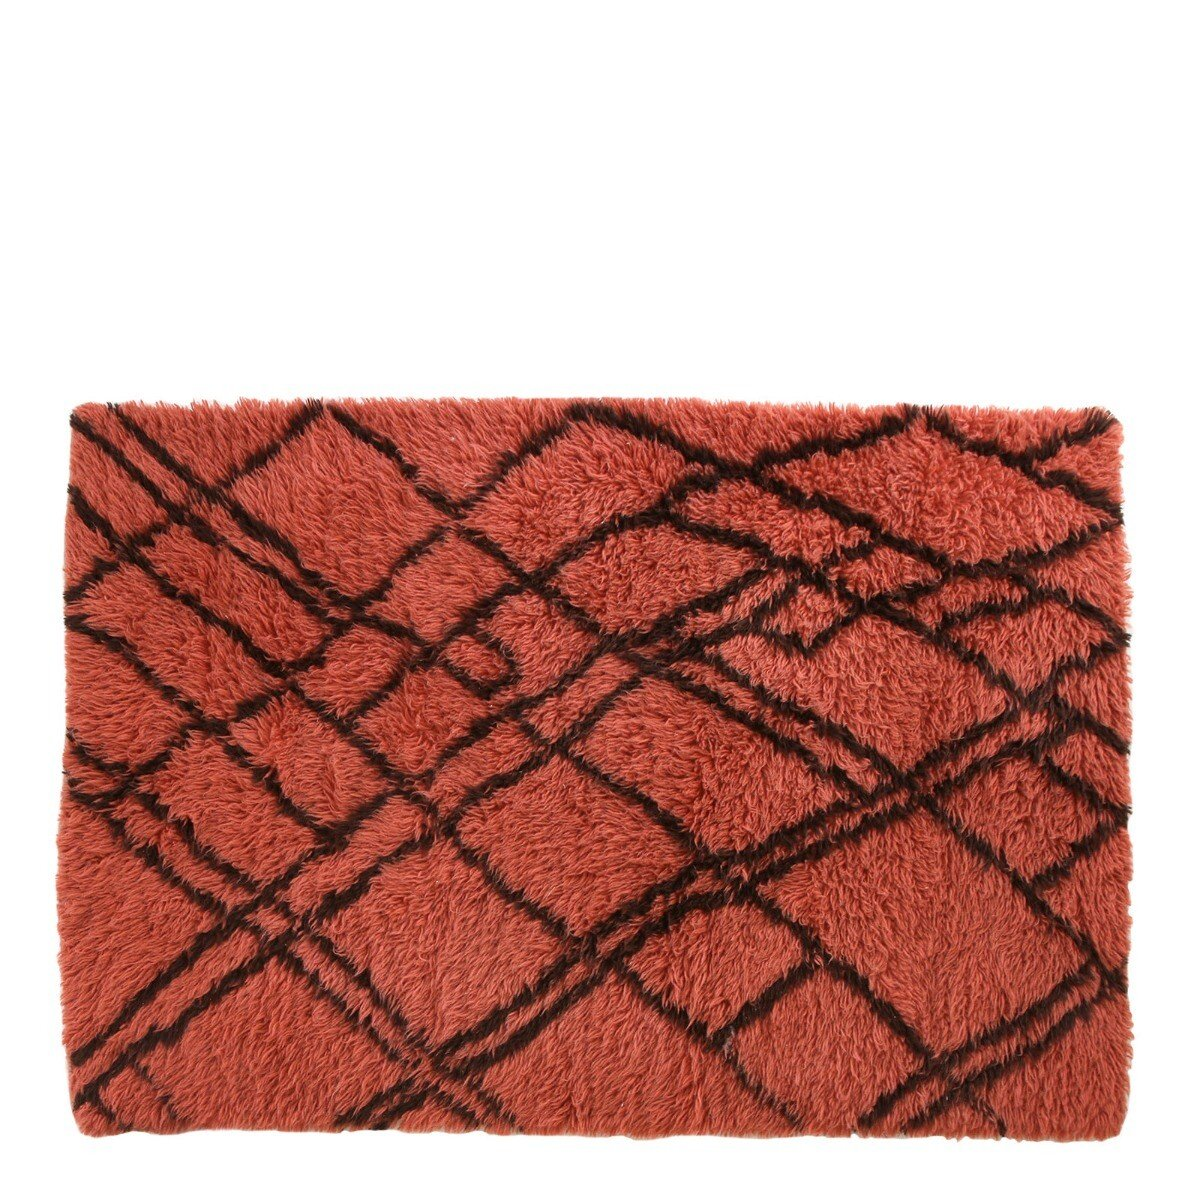 HKliving vloerkleed berber wol funky red 120 x 180